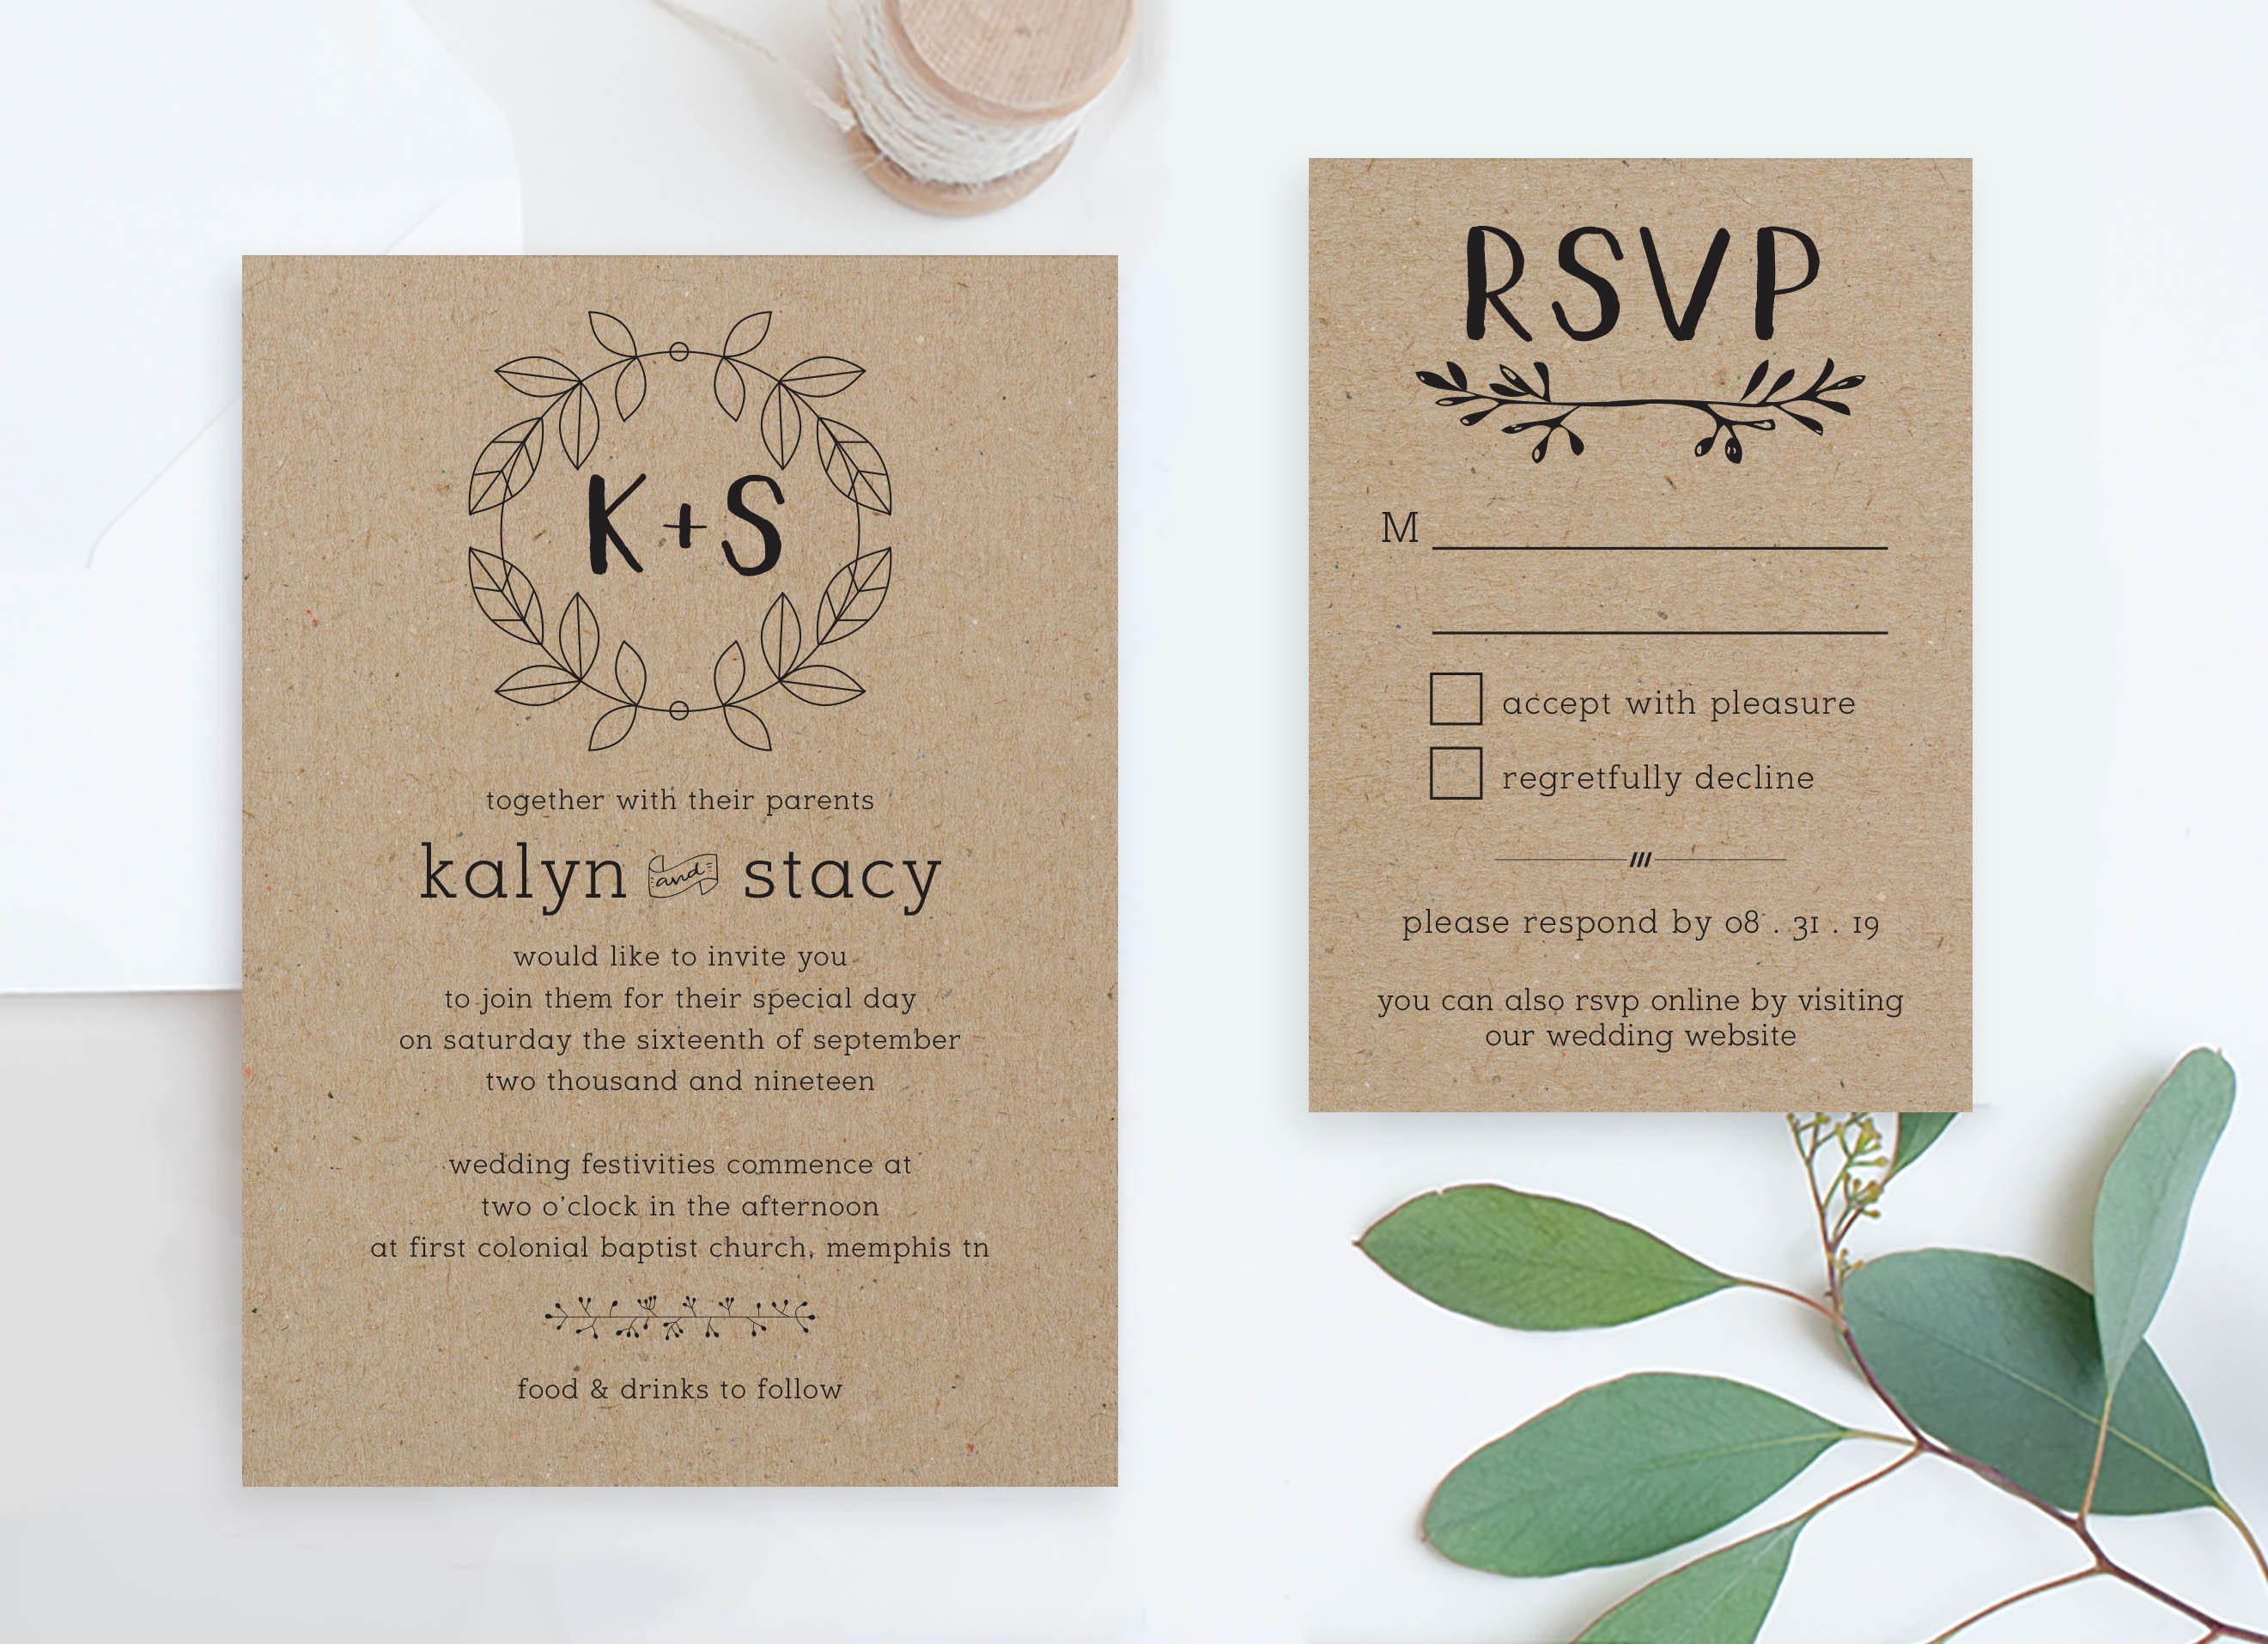 Cheap Wedding Invitations Online.Cheap Wedding Invites And Rsvp Set Printables Rustic Wedding Invitations Suite Diy Invitation Packages Country Wedding Cards Online Pdf